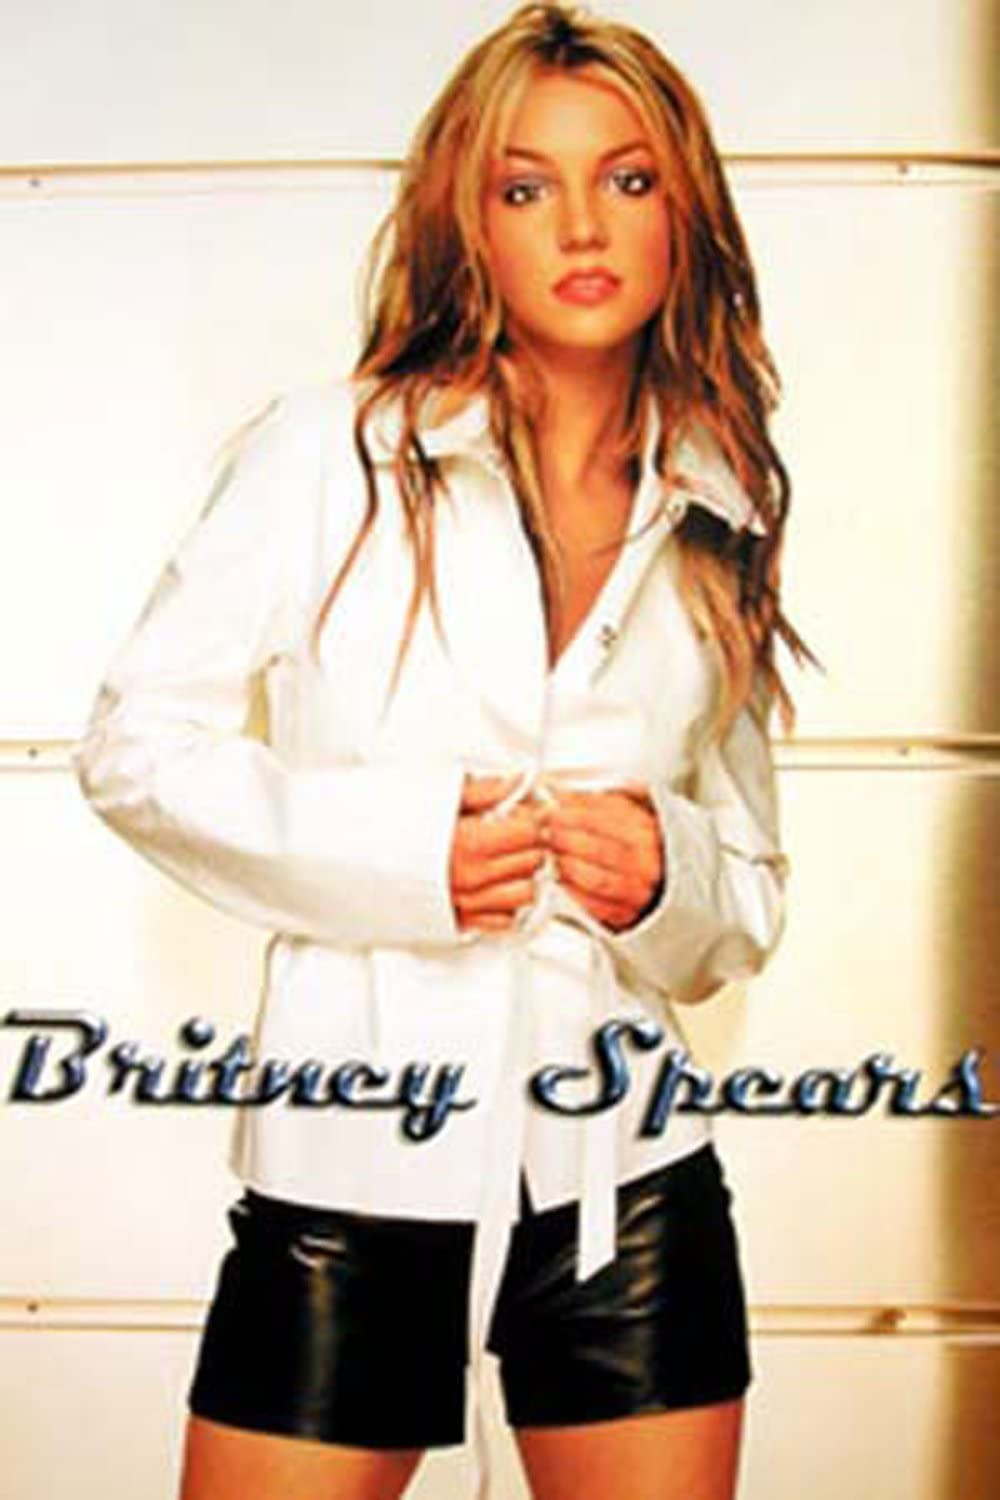 APPROX SIZE 12X8 INCHES PHOTO PRINT BRITNEY SPEARS  AUTOGRAPH